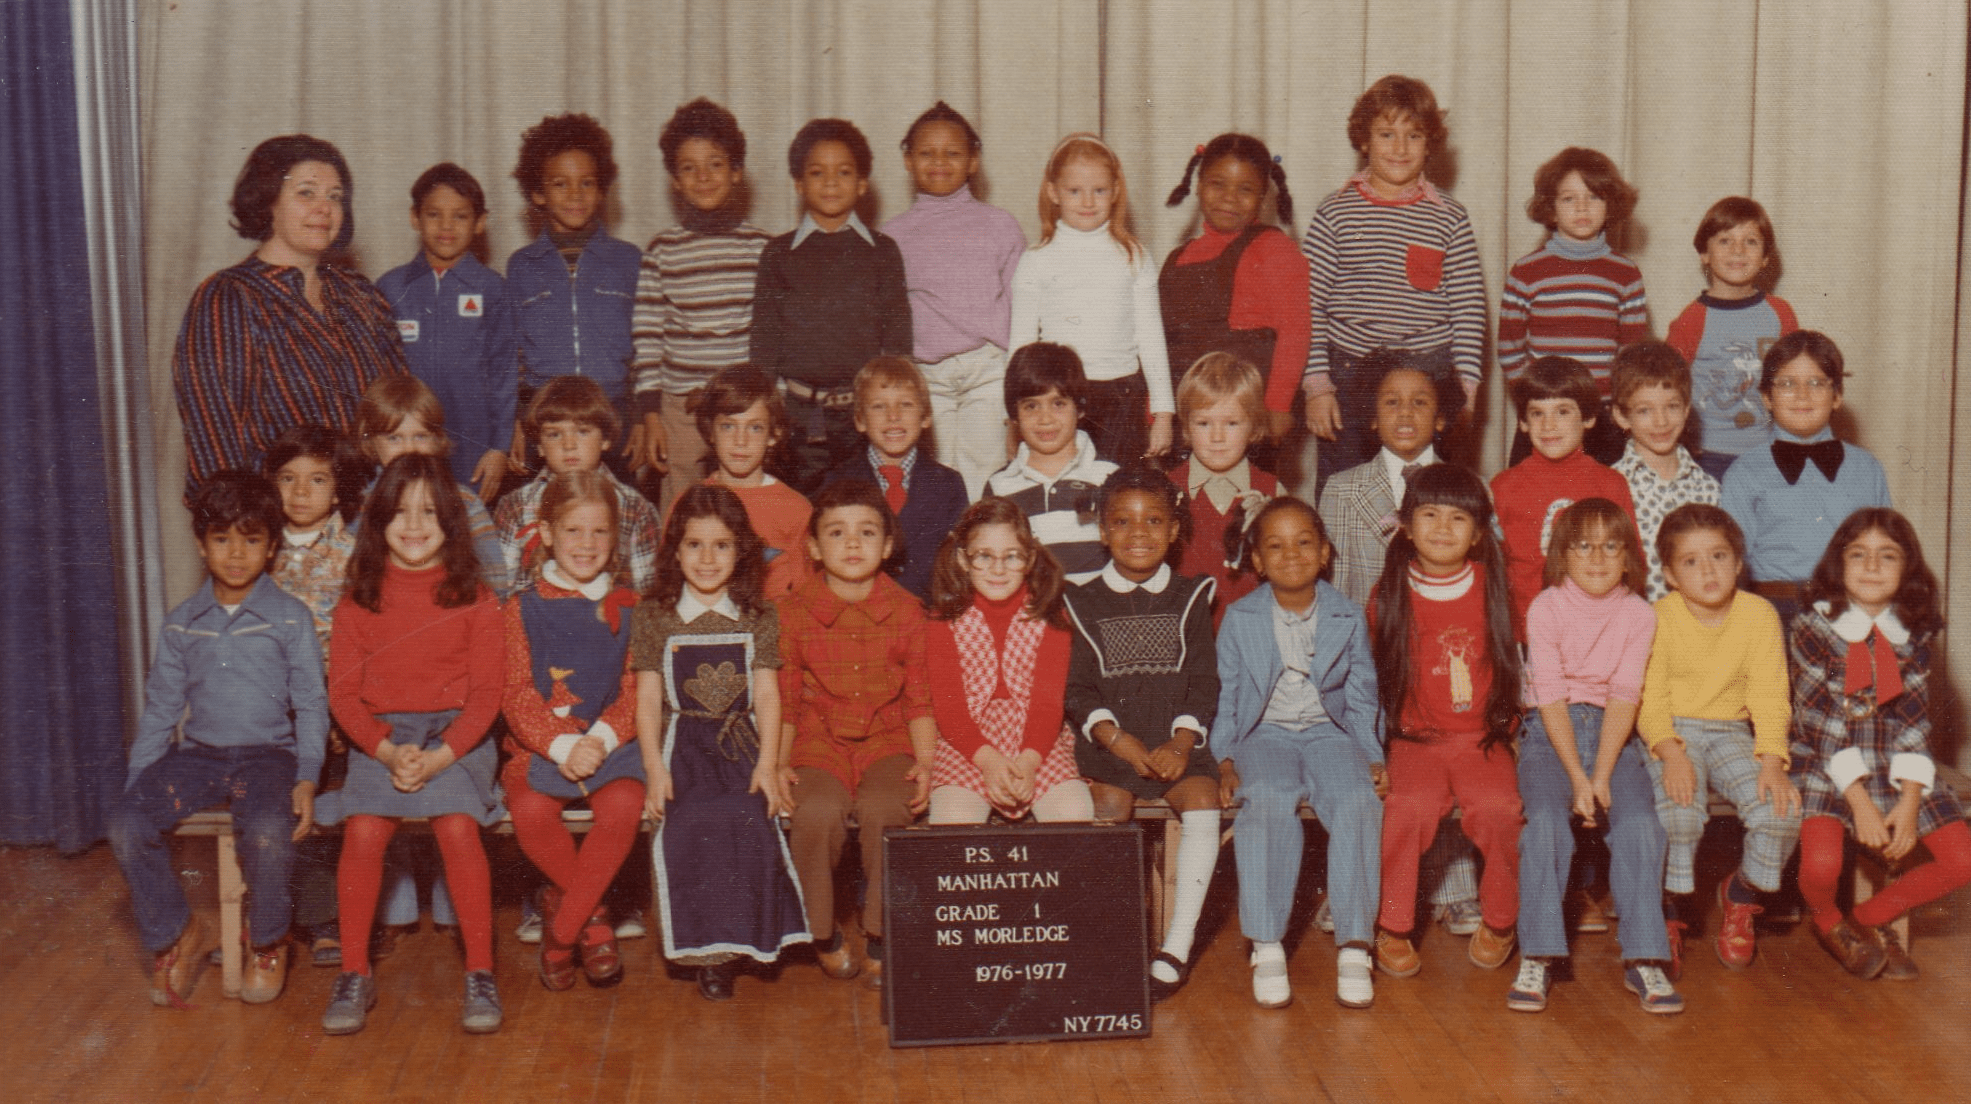 Smile, Kids, It's Class Picture Time  Ephemeral New York